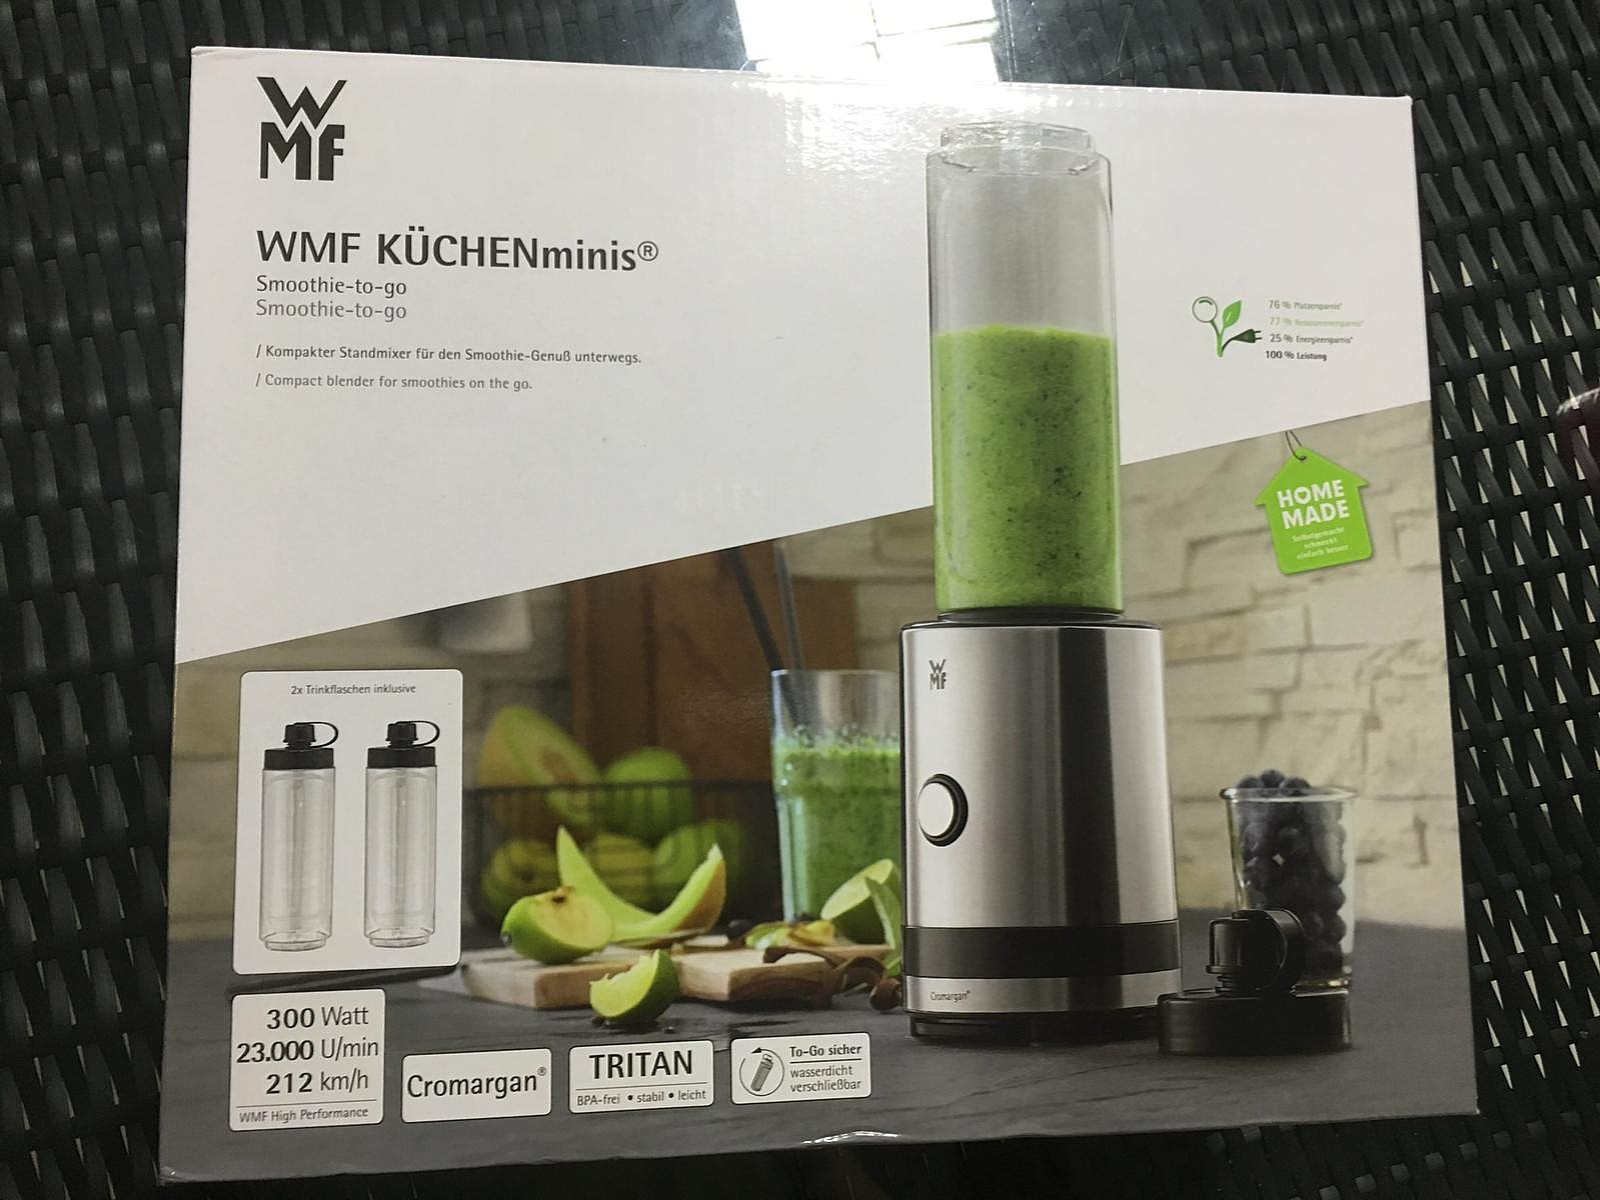 59234aa57 WMF Kitchenminis Smoothie-to-go, Home Appliances, Kitchenware on Carousell